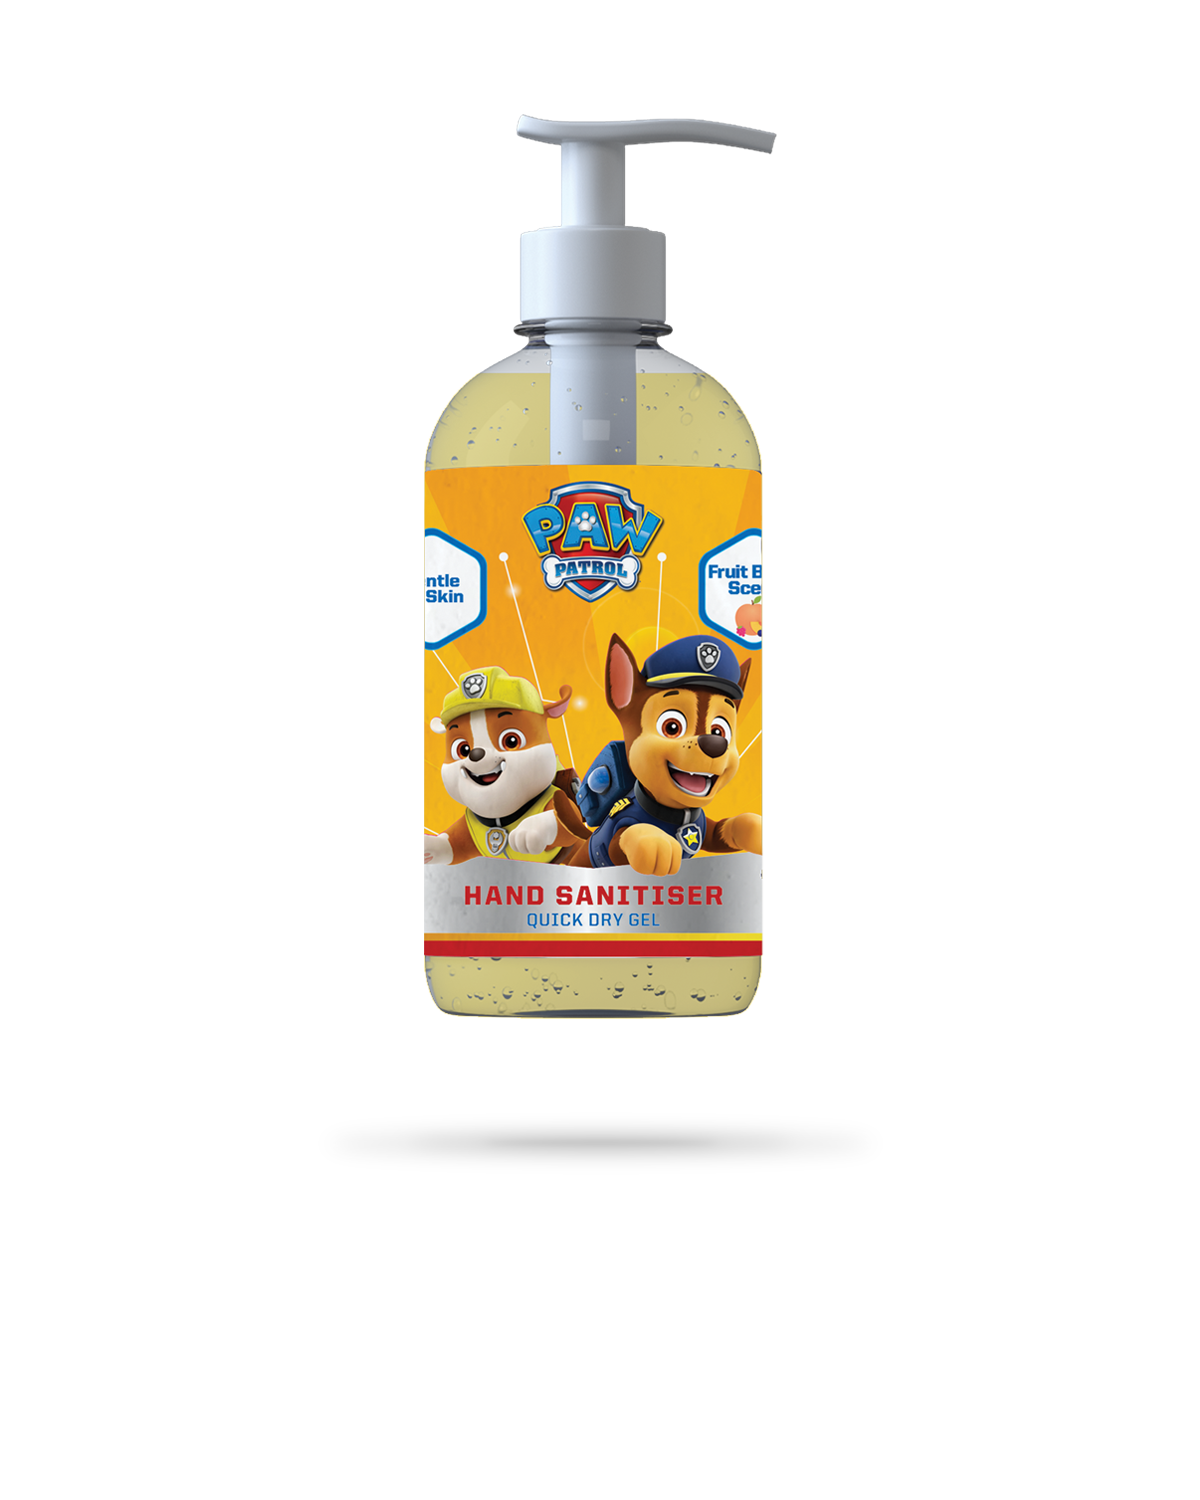 Fruit Burst Hand Sanitiser Gel - 250ml - PAW Patrol